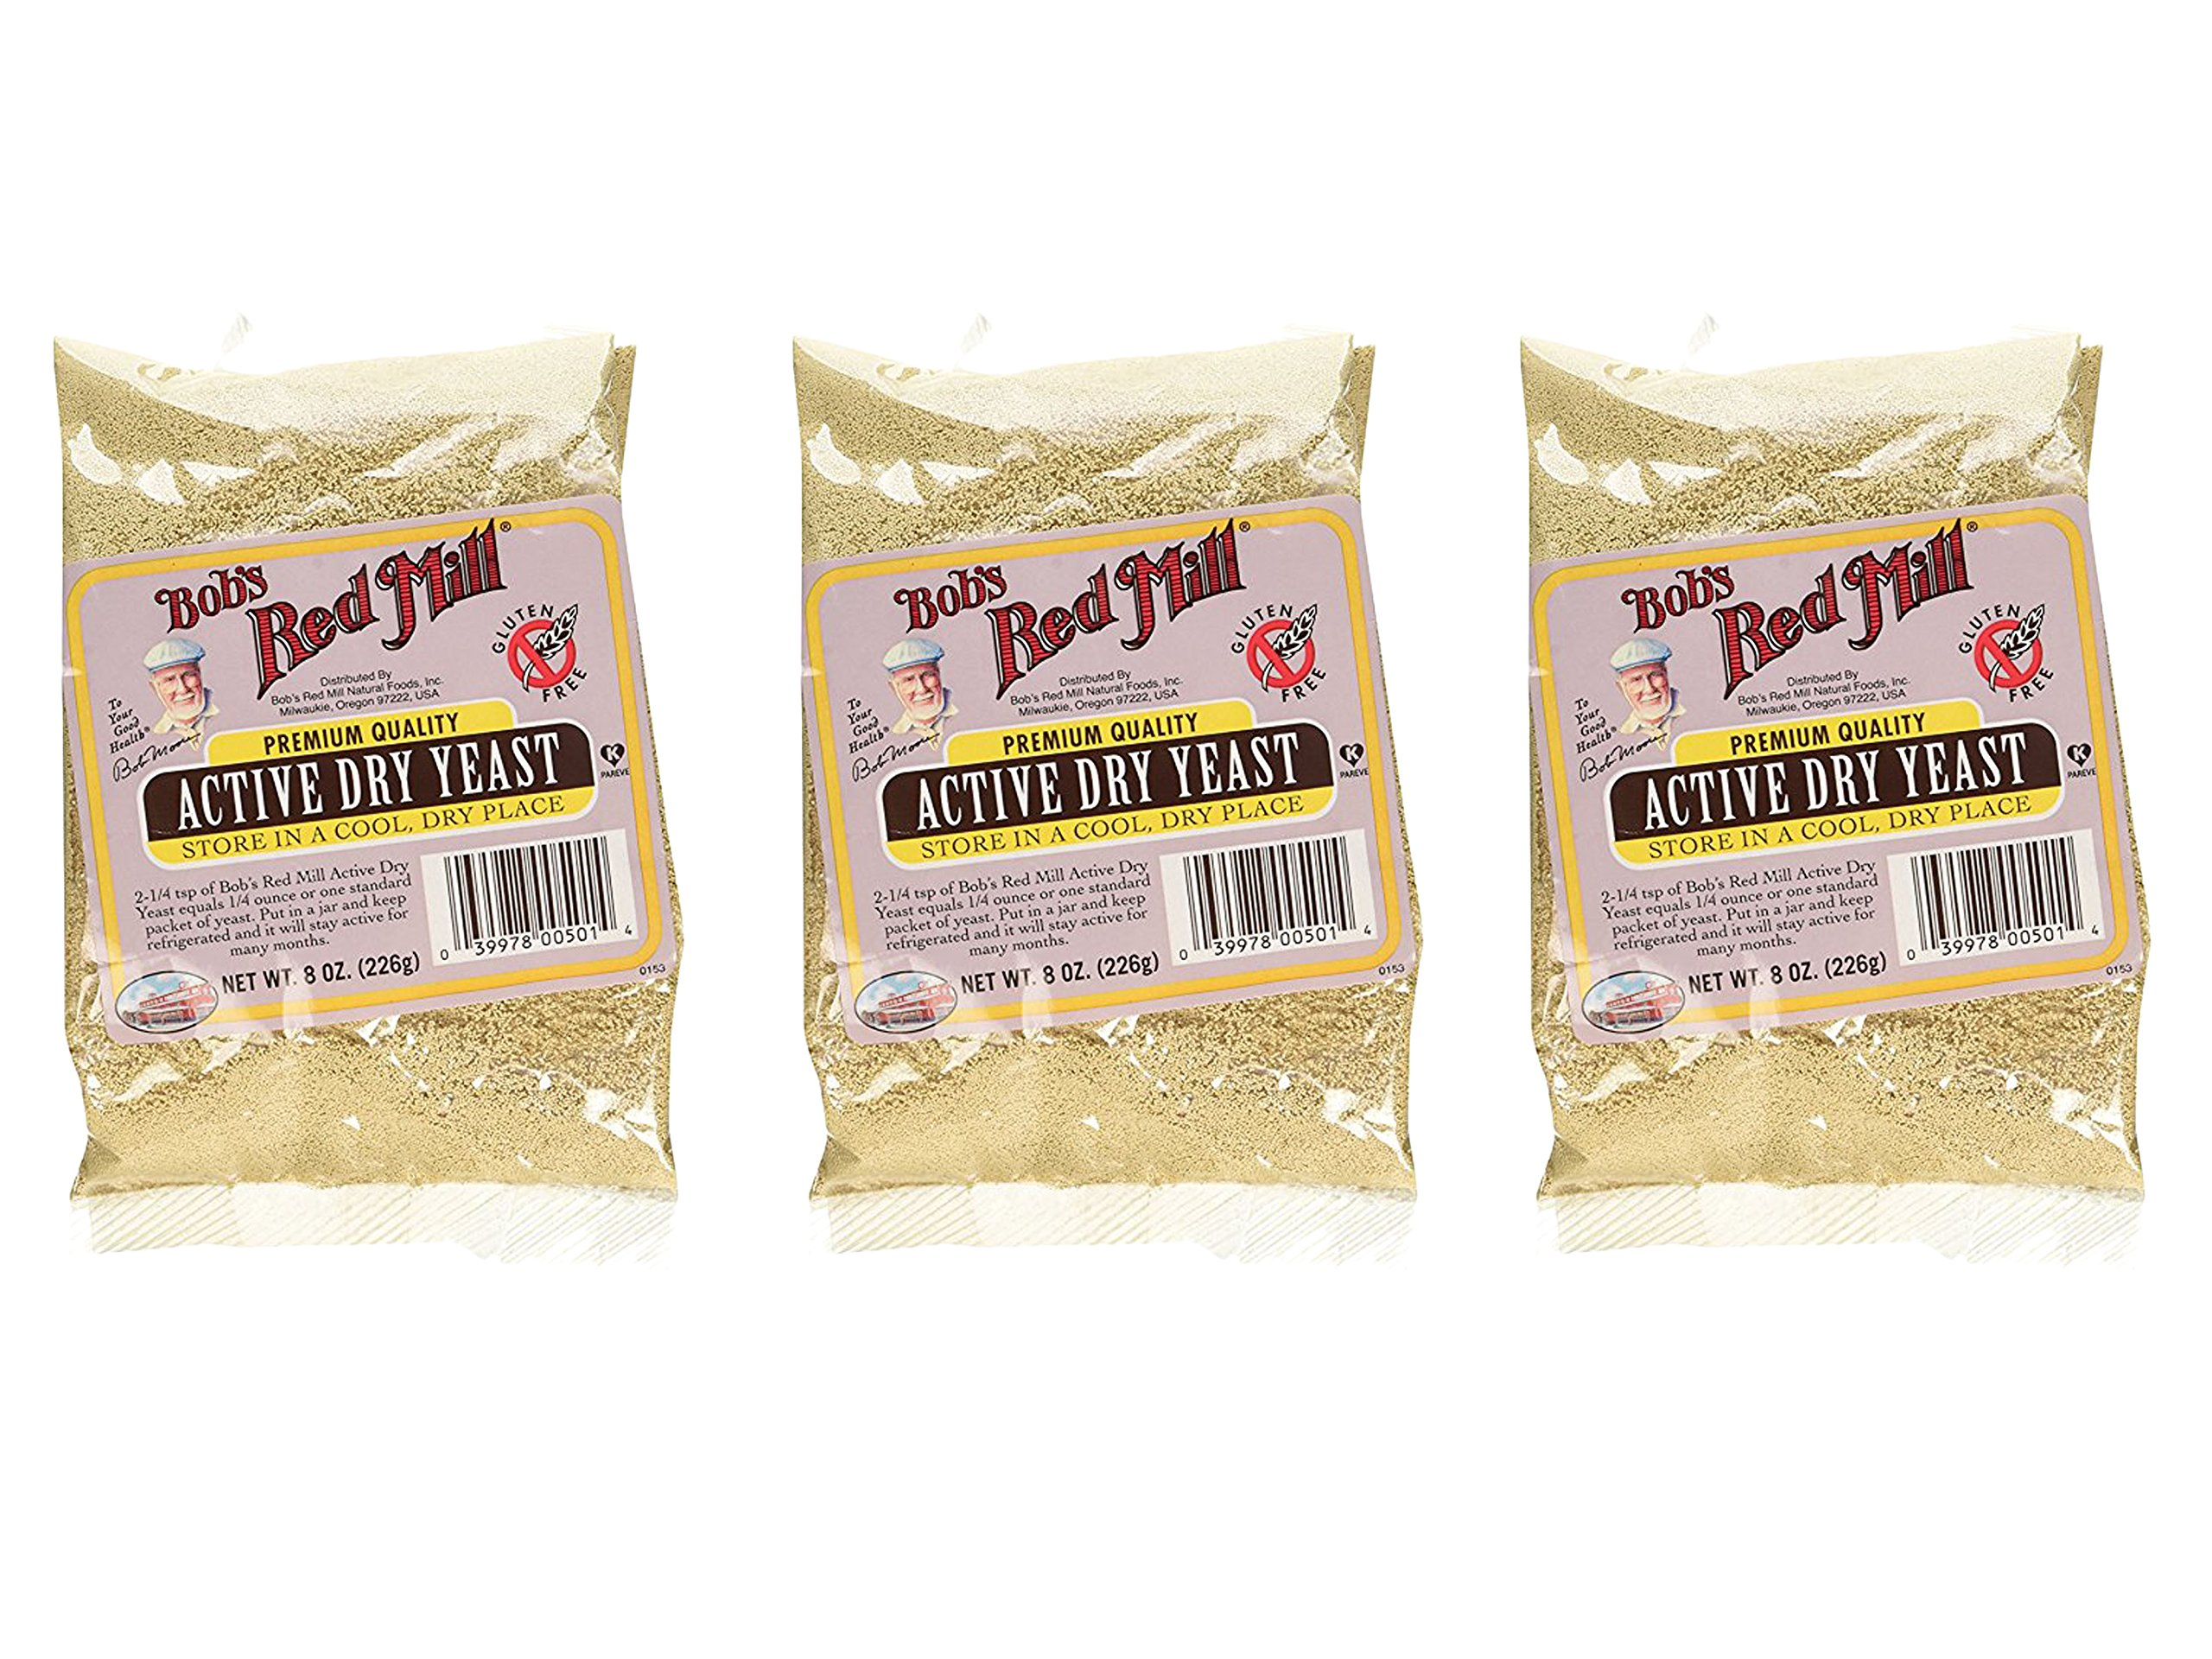 Set of 3 Bob's Red Mill Gluten Free Active Dry Yeast, 8-ounce bundled by Maven Gifts by Haddon House